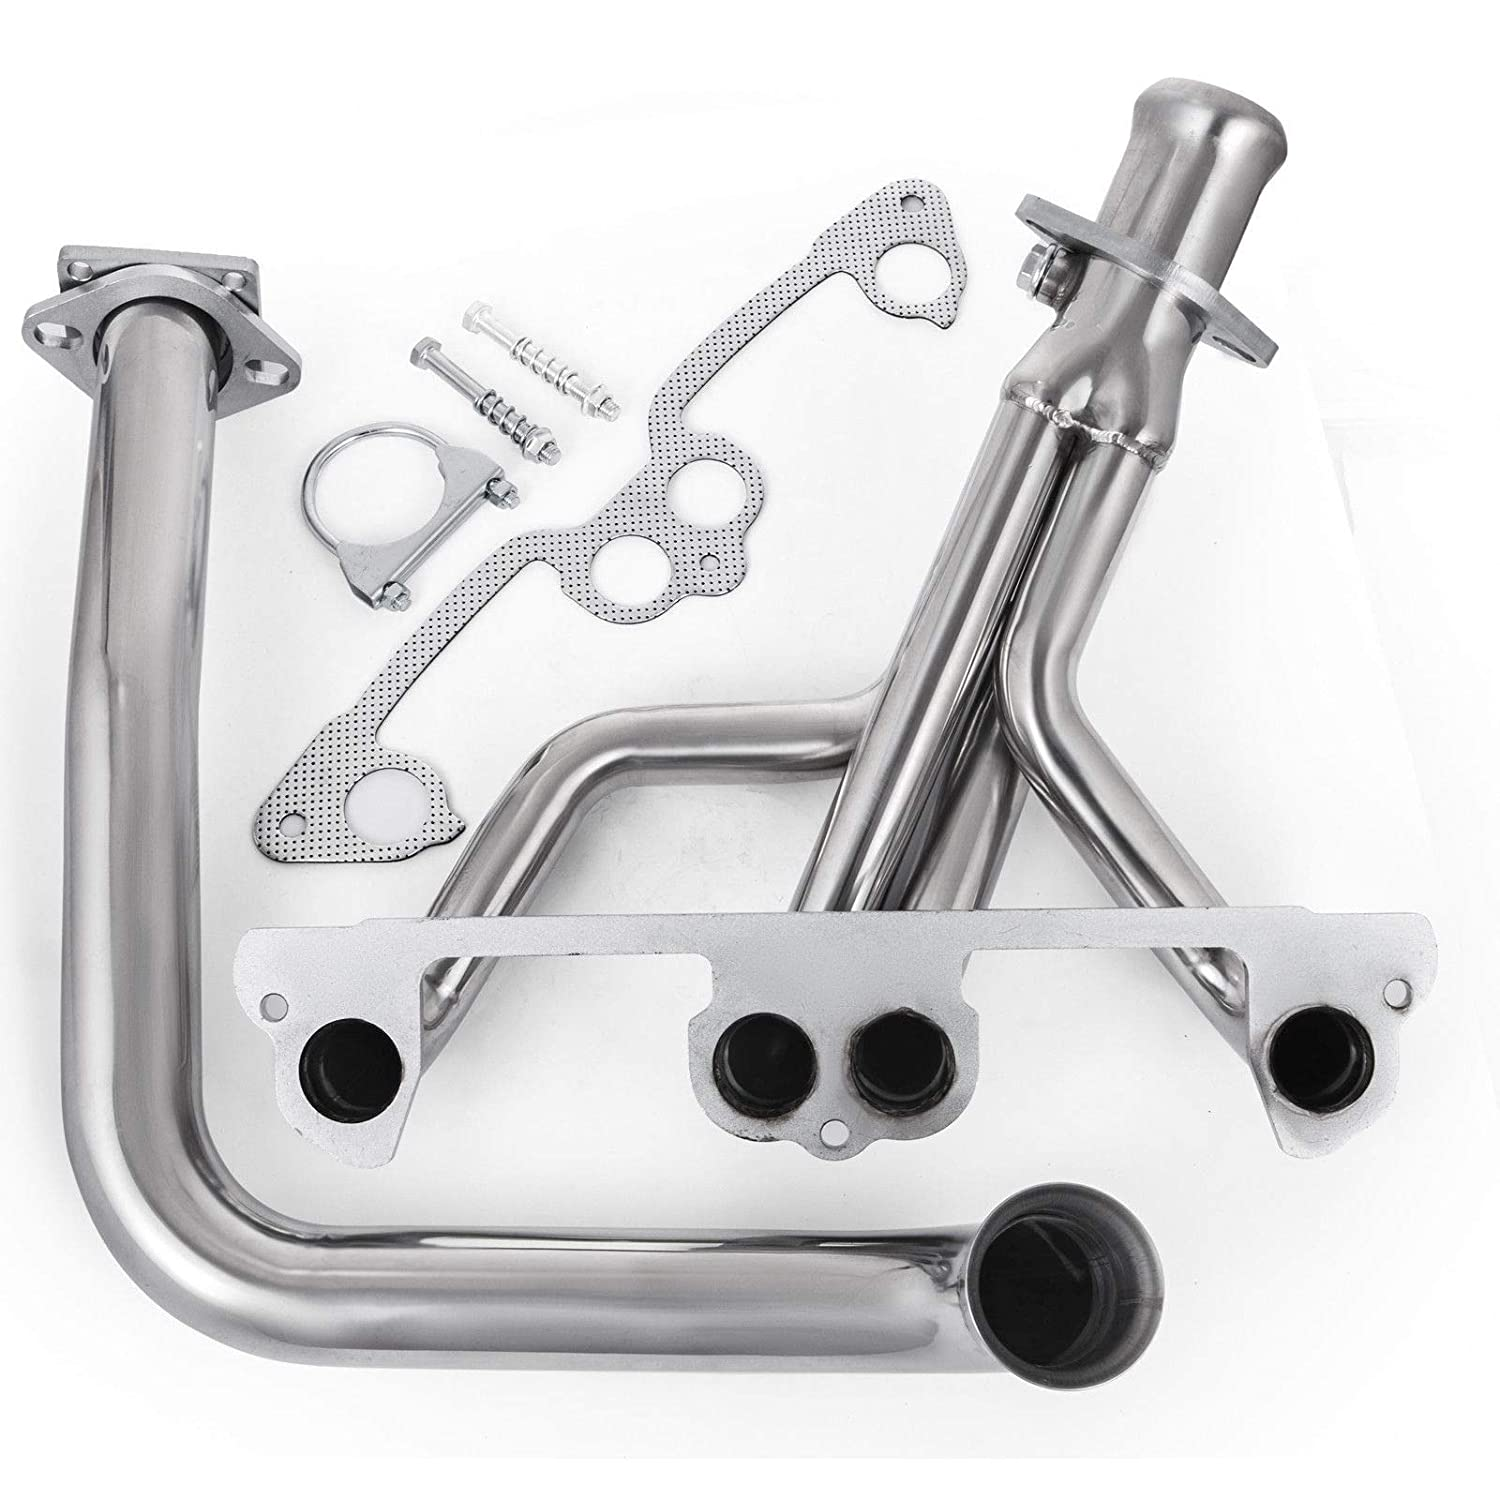 Mophorn High Performance Stainless Steel Exhaust Manifold Header Downpipe features 4-1 piping design for Jeep Wrangler YJ L4 2.5L 1991-1995